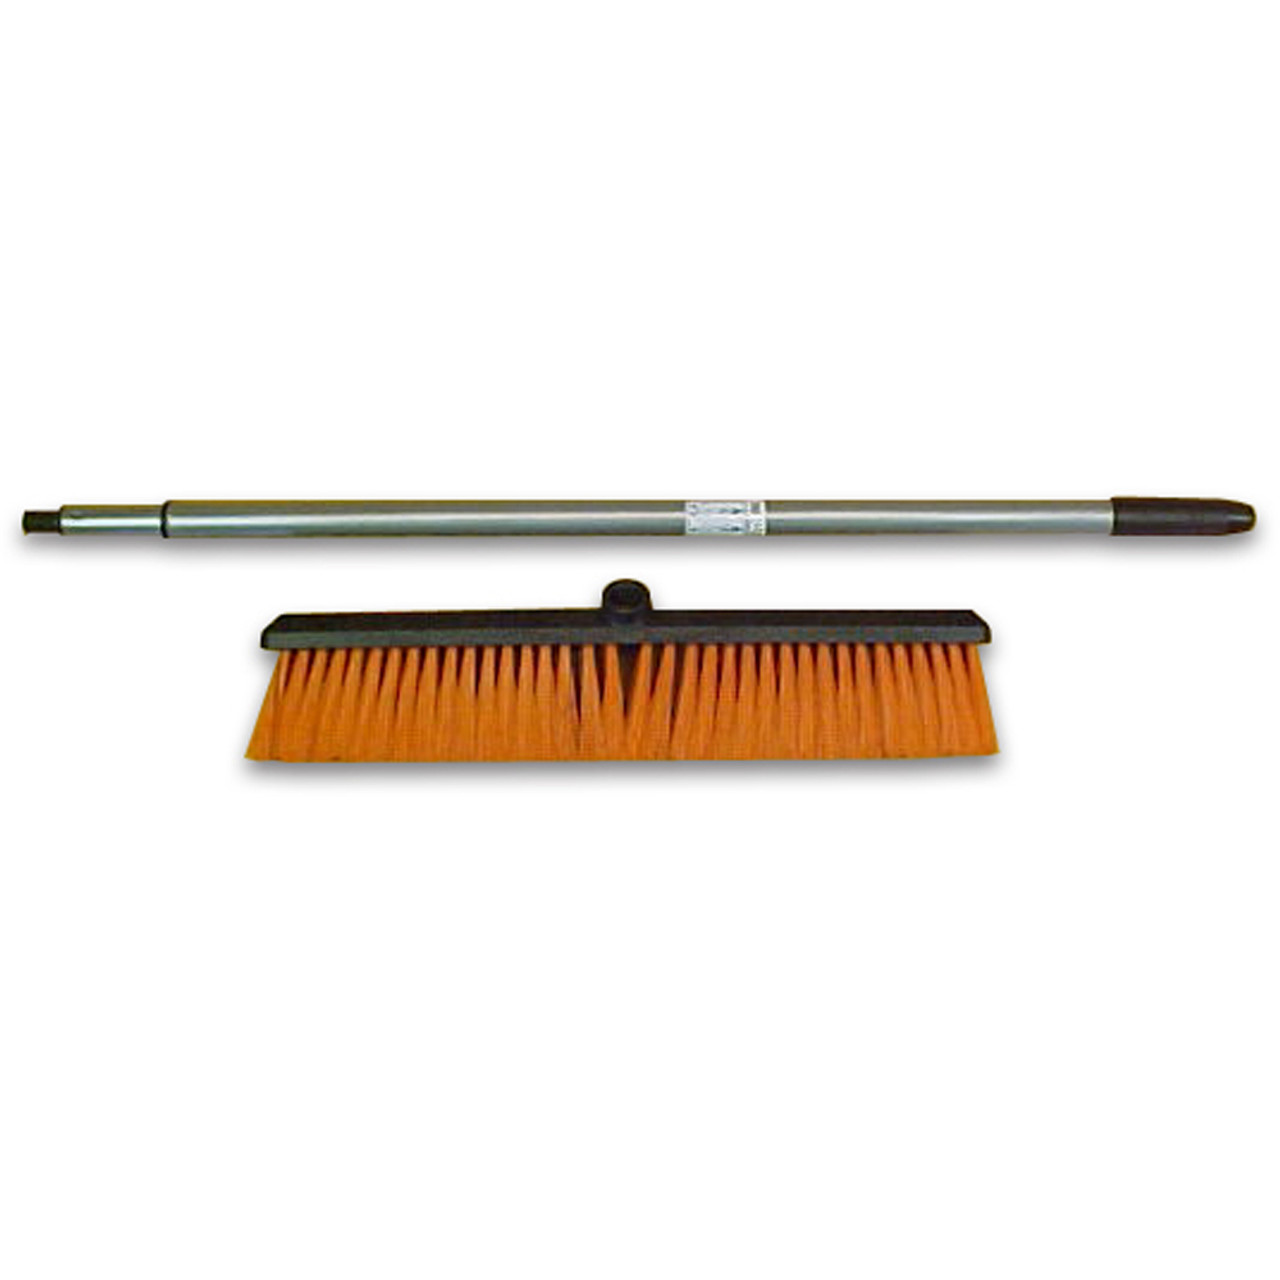 Push Broom with Telescoping Handle by Laitner